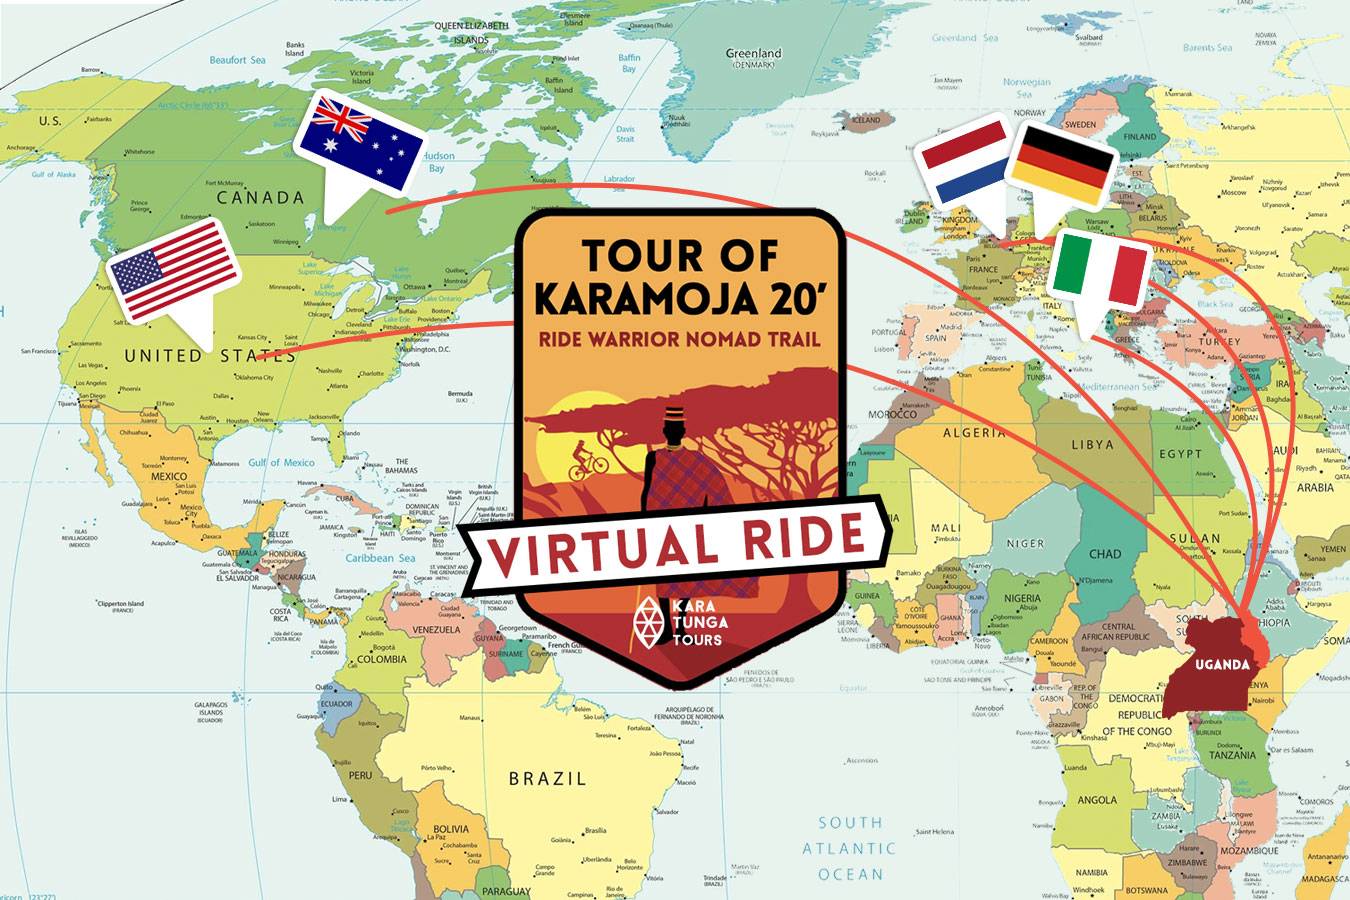 tour-of-karamoja-2020-uganda-bike-event-virtual-wilderness-ride